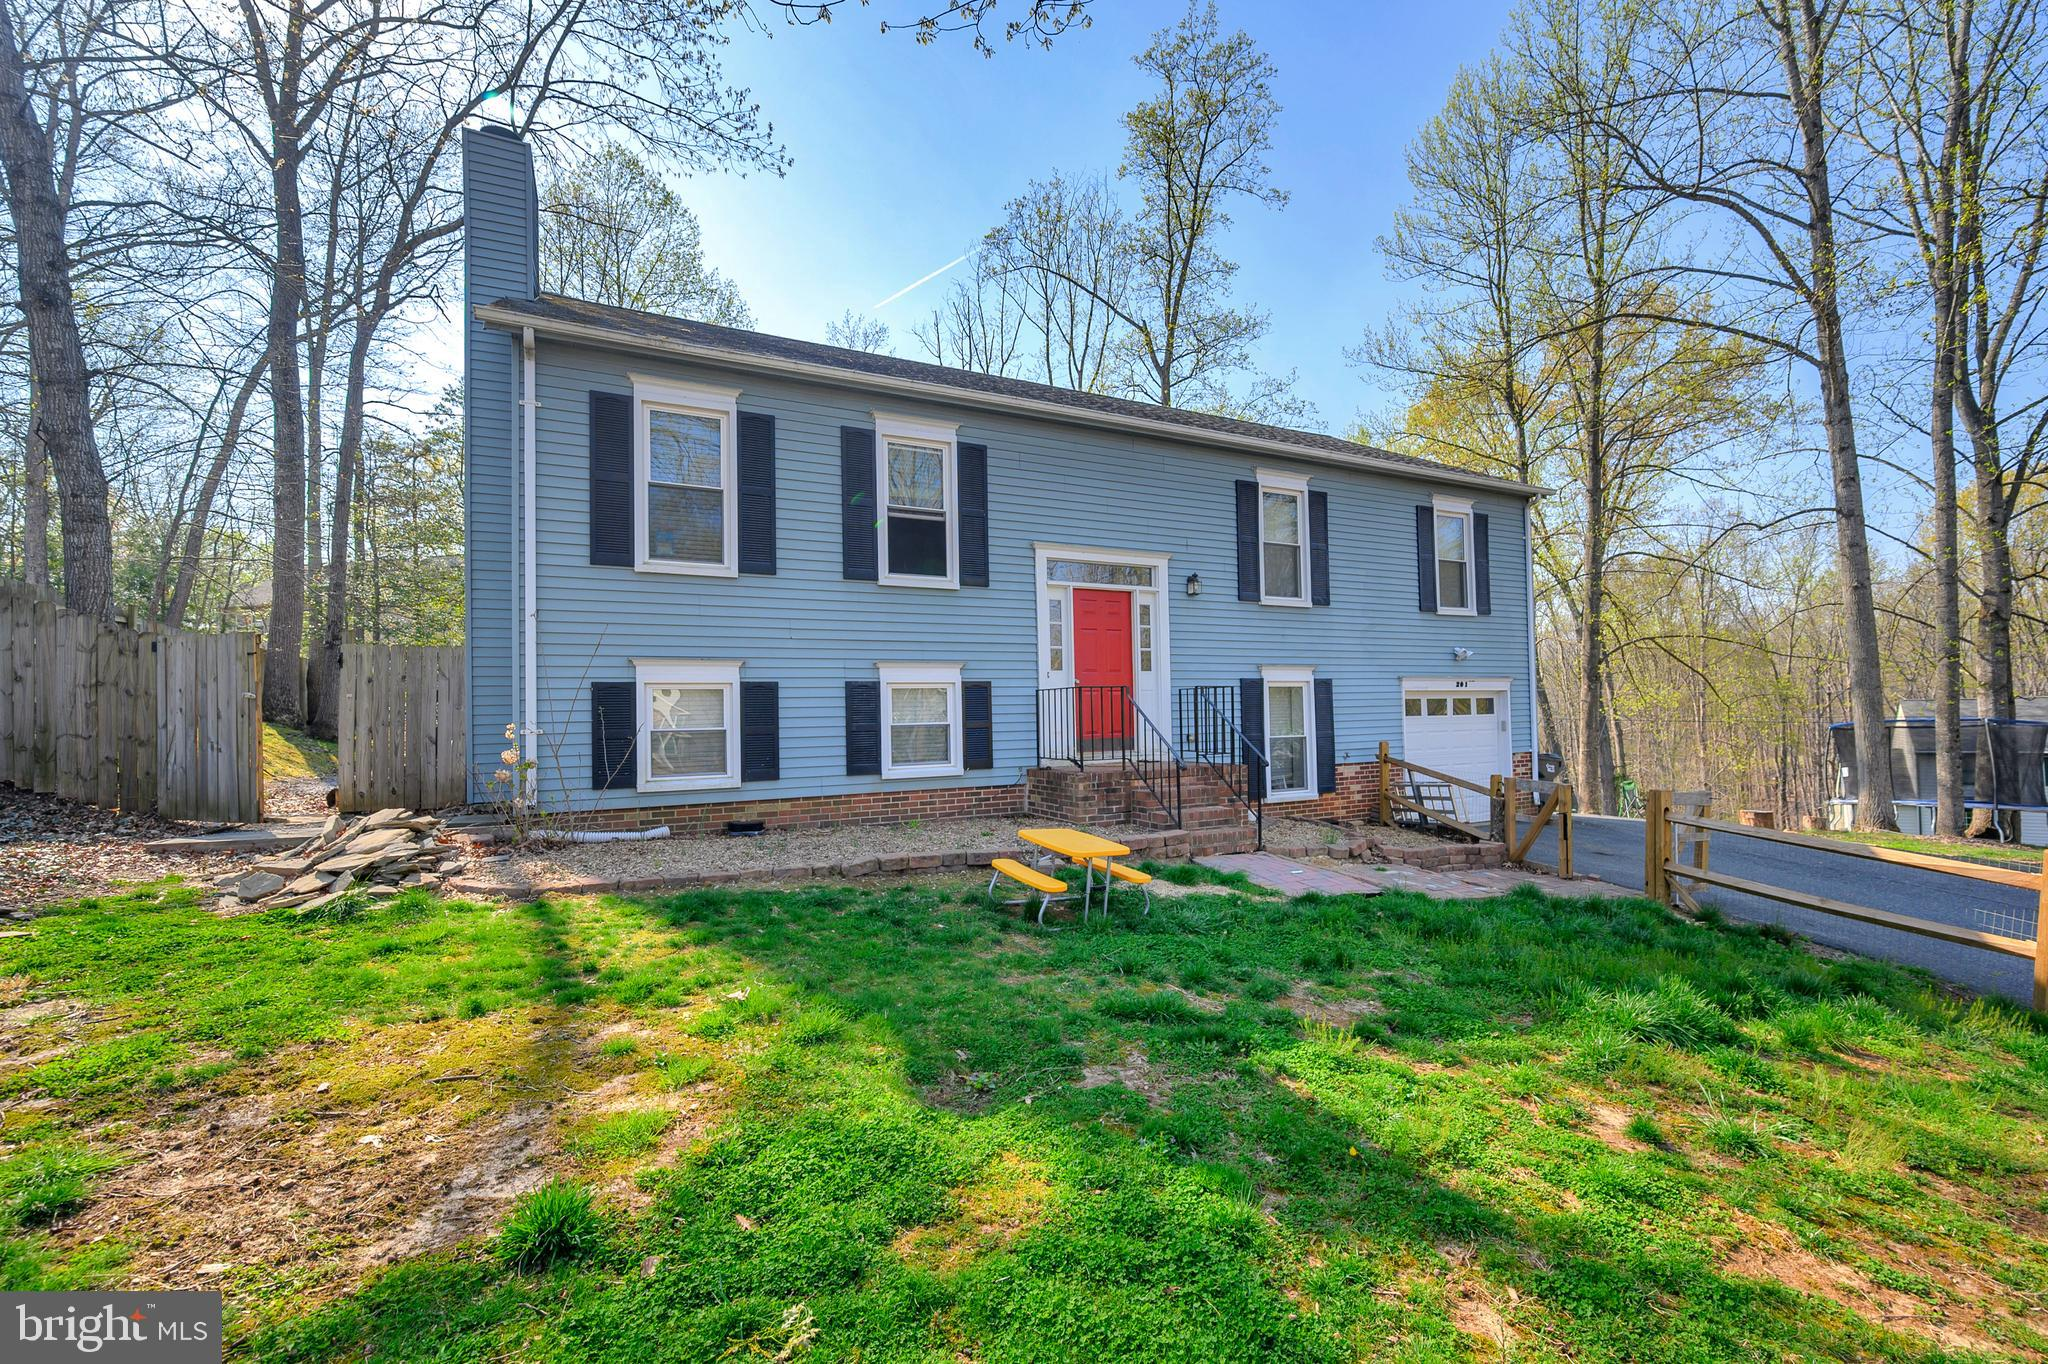 Move-in ready 4 bedrooms 3 bathrooms Split level home, located in North Stafford. Excellent maintain